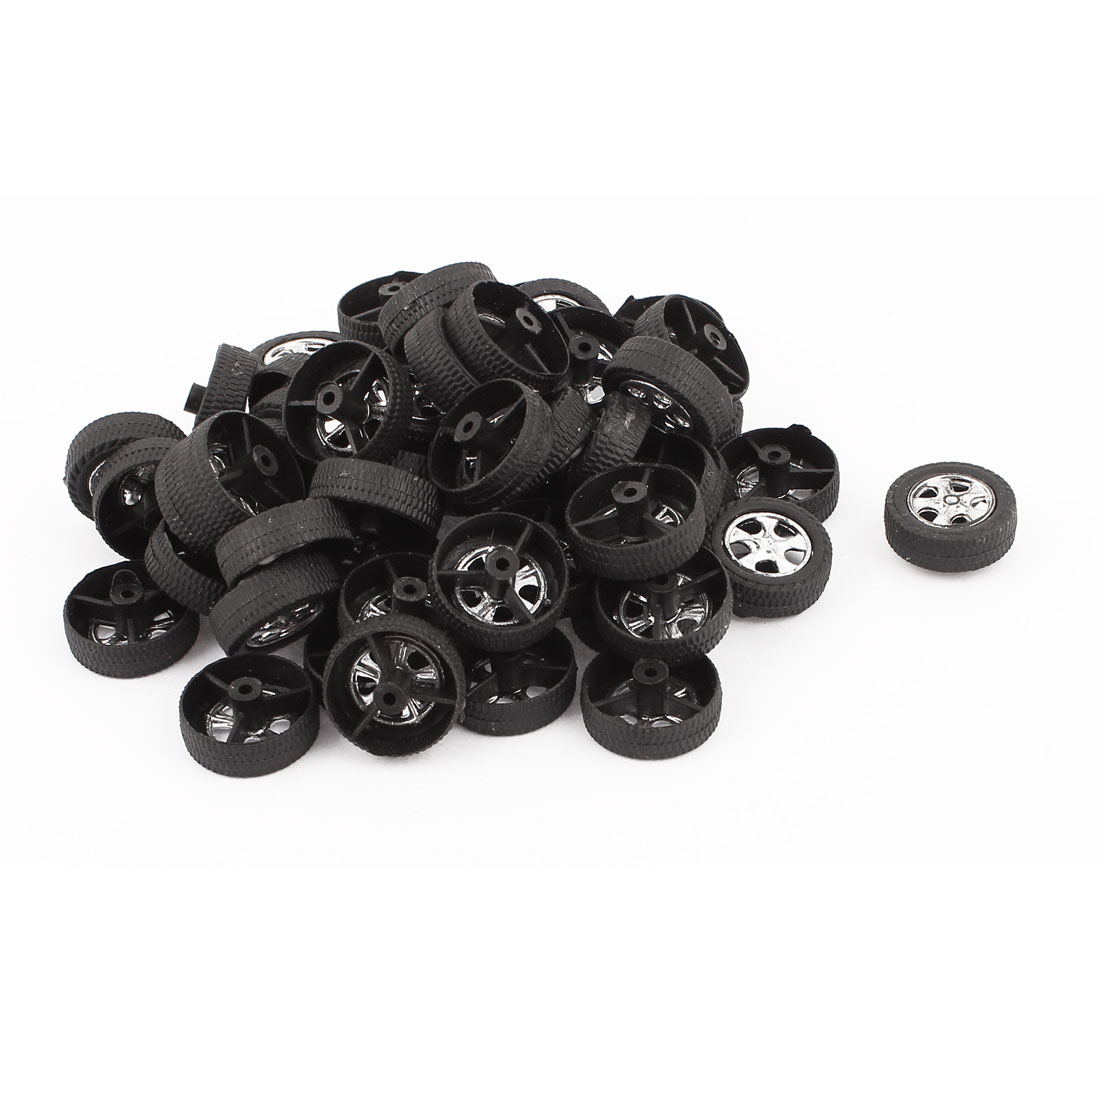 50 Pcs RC Toy Car Robot Vehicle Wheel DIY 19mm Diameter Rims Black